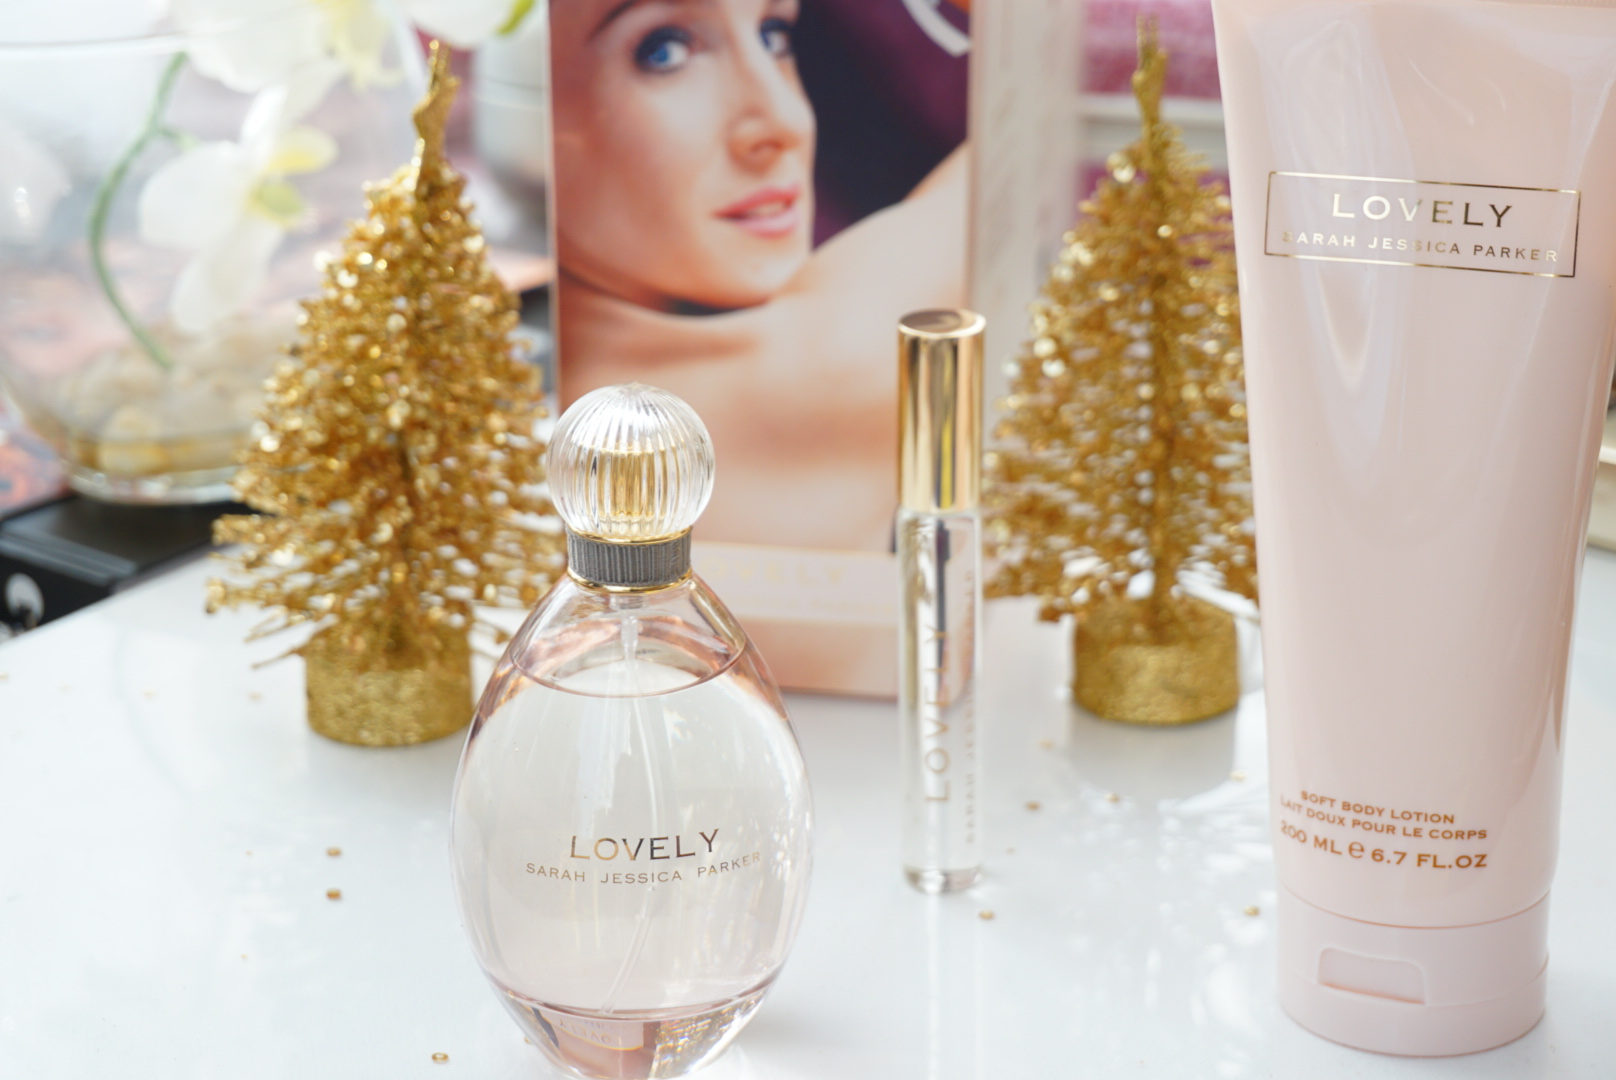 Lovely by Sarah Jessica Parker Gift Set